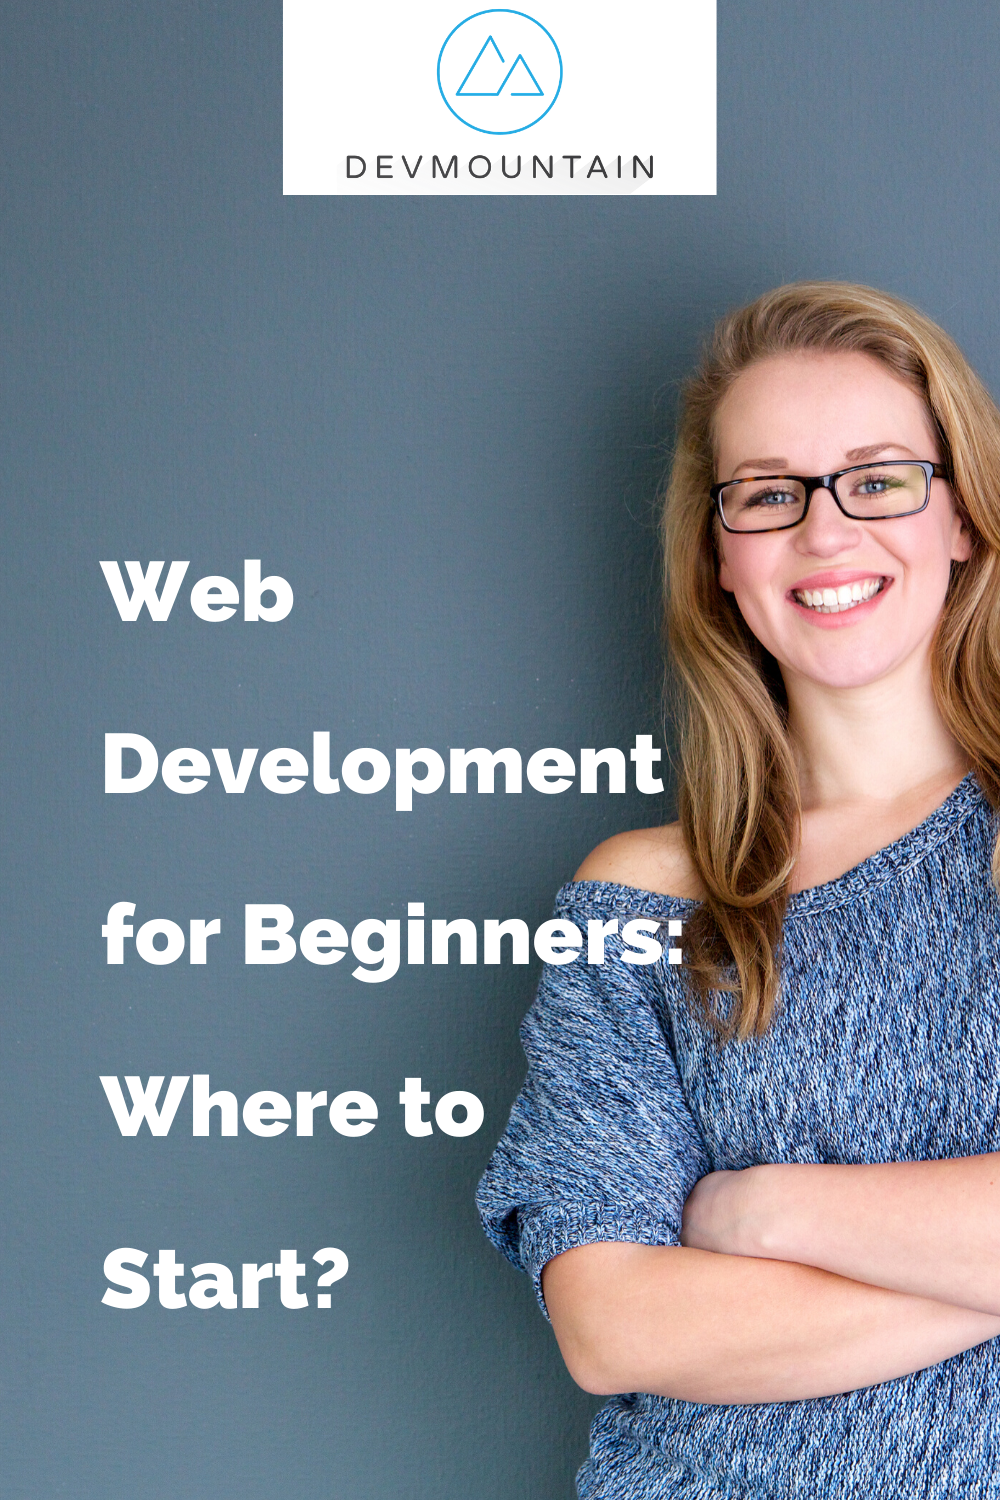 Web Development for Beginners: Where to Start?